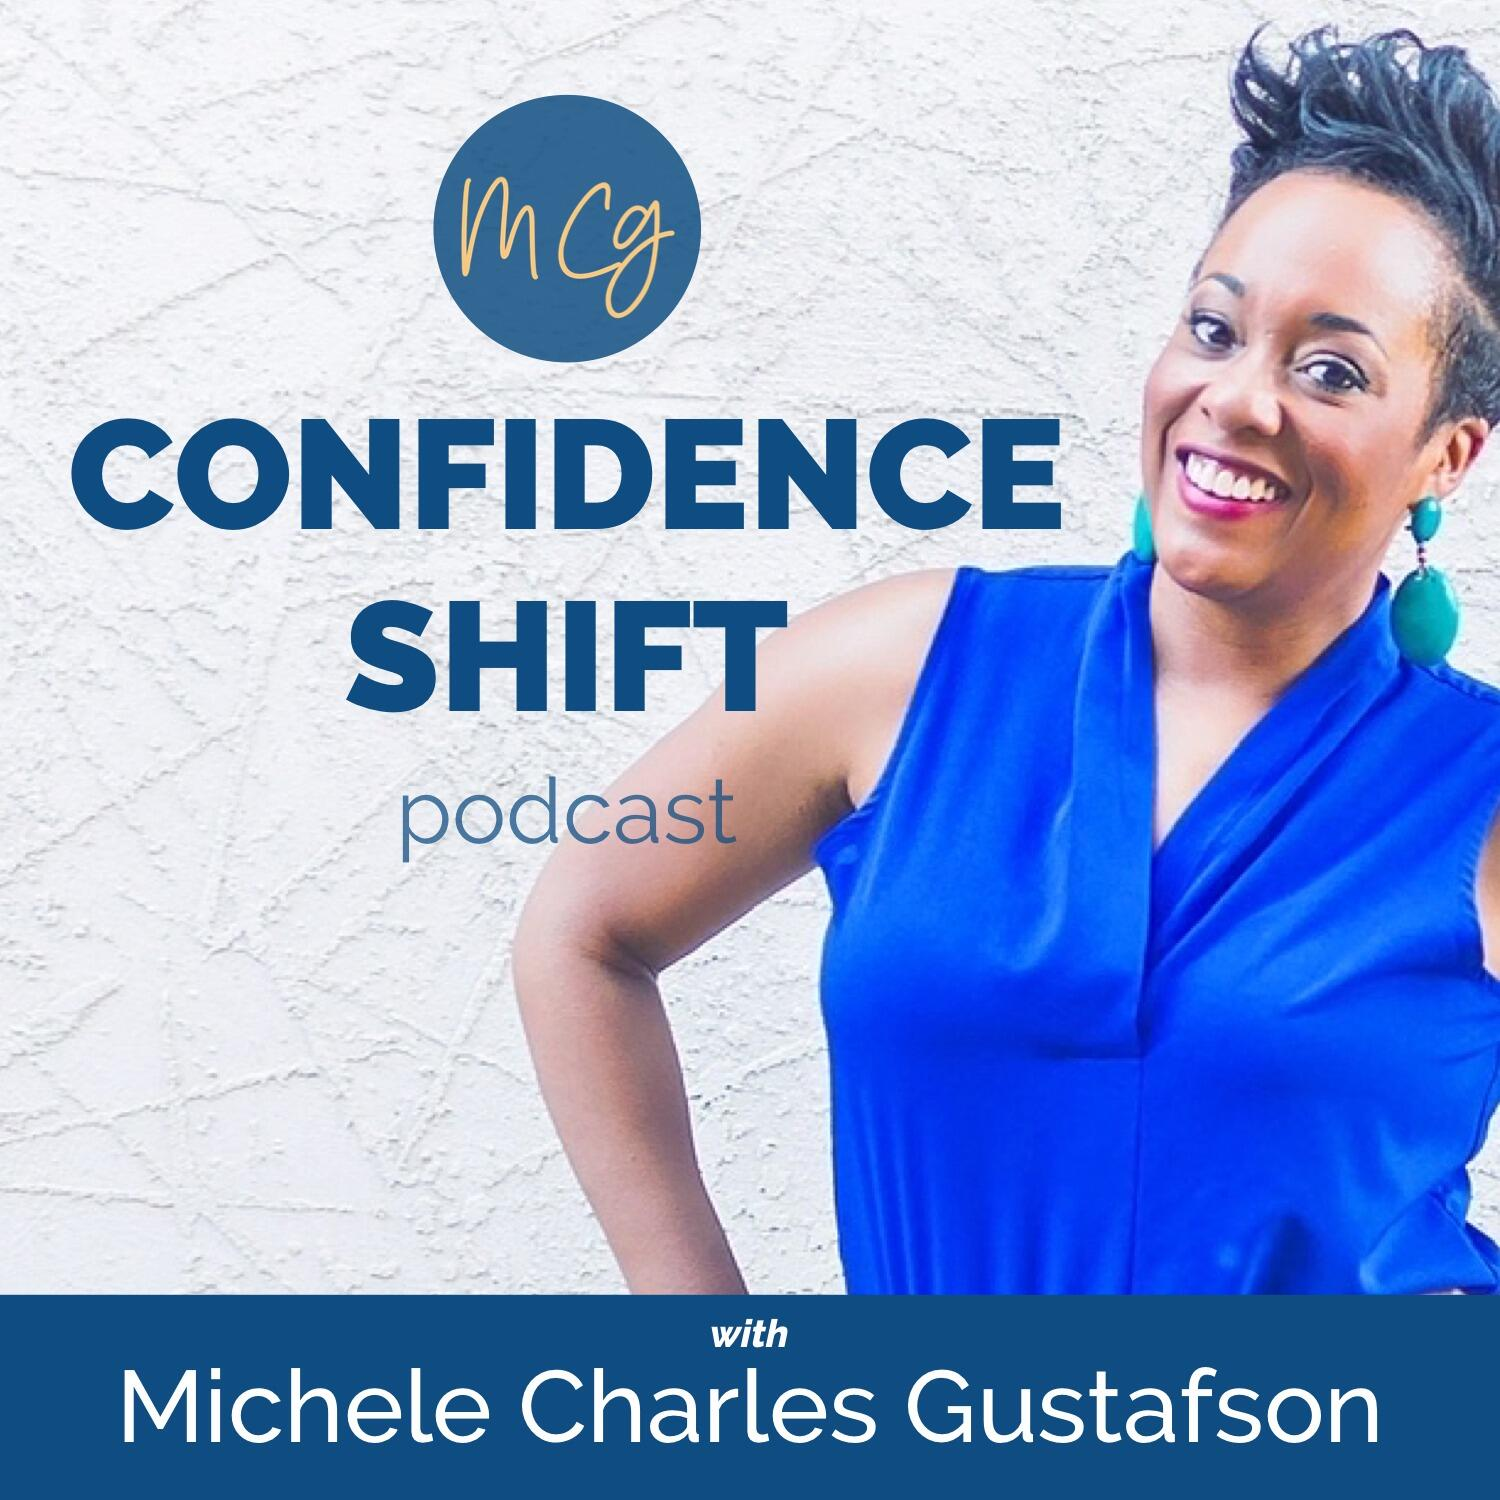 Confidence Shift Podcast